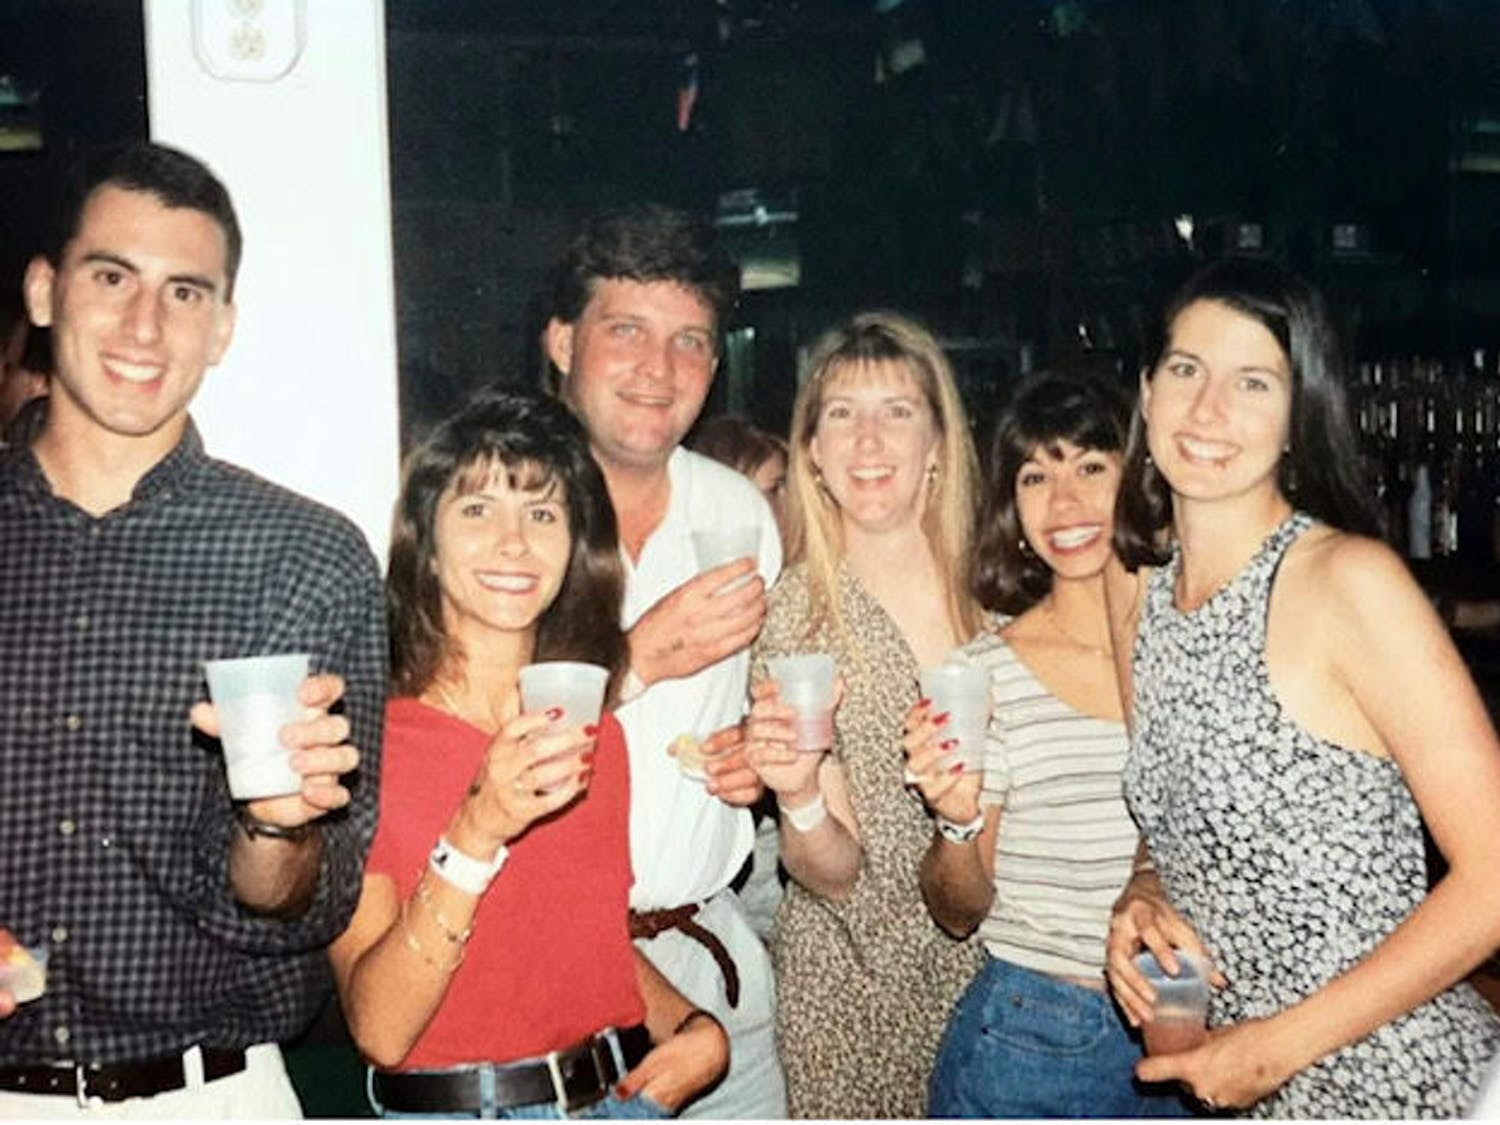 Previous owner Kim Cinque (far right) and friends at Silver Q Billiards & Sports Bar in 1994.